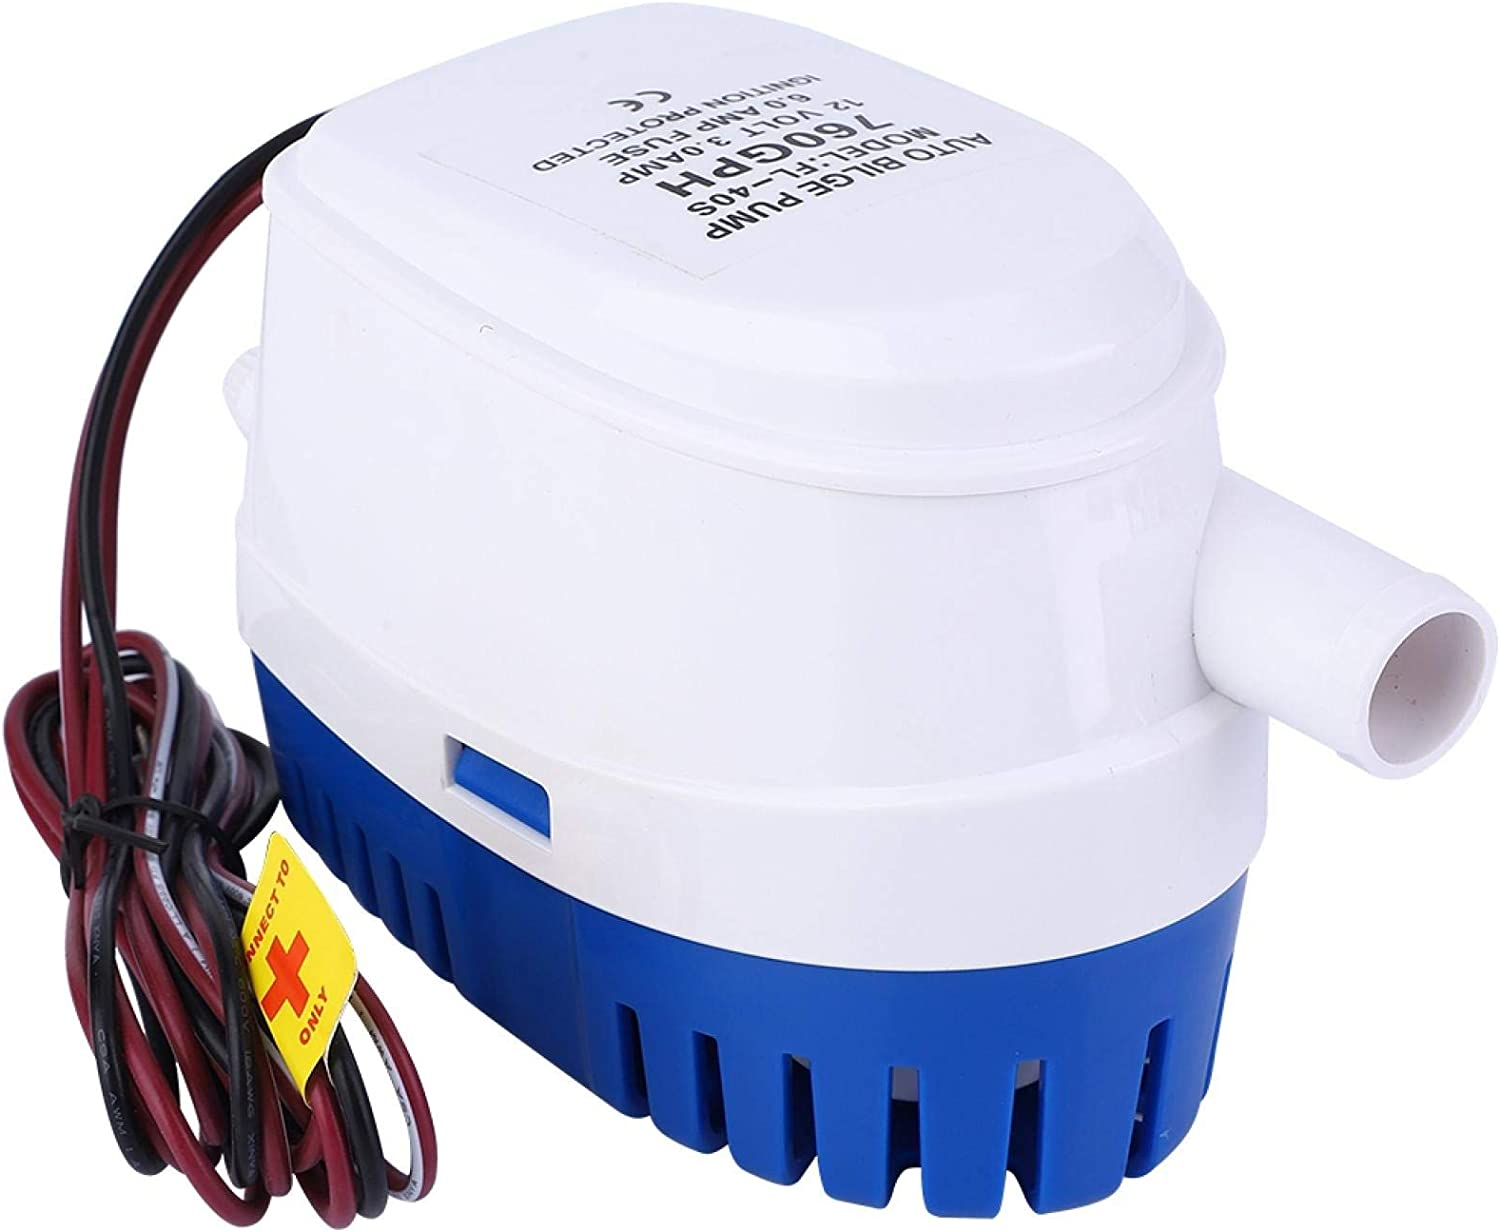 TANKE DC12V Automatic Submersible Bilge Max 40% OFF Pump with Float Water Oakland Mall Sw